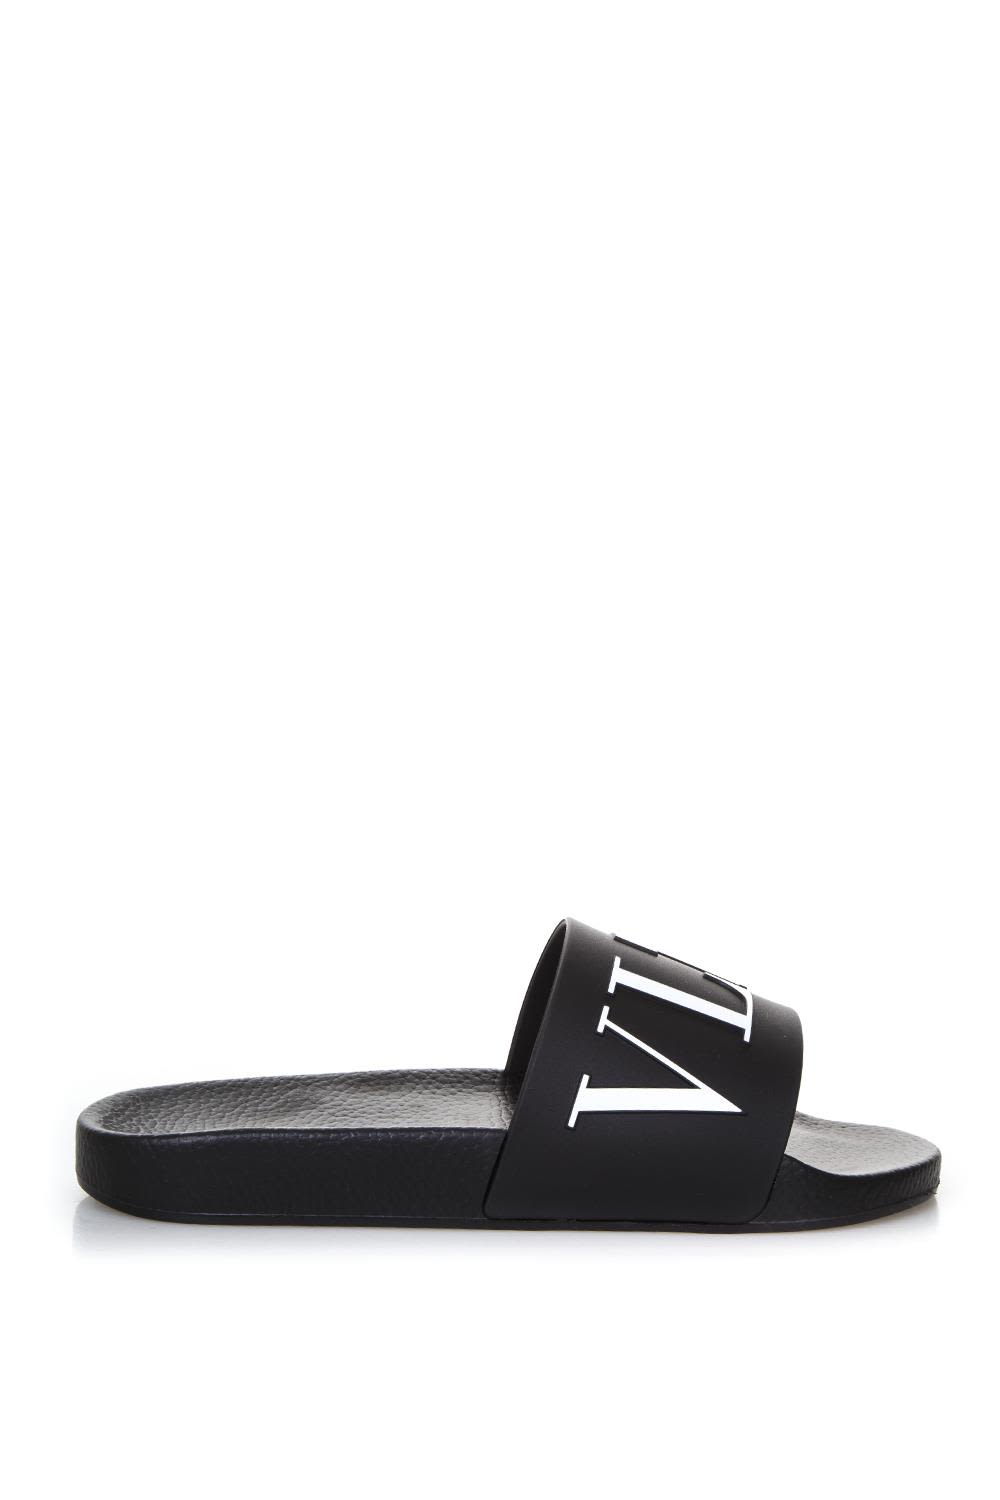 VALENTINO WHITE RUBBER SANDALS WITH LOGO